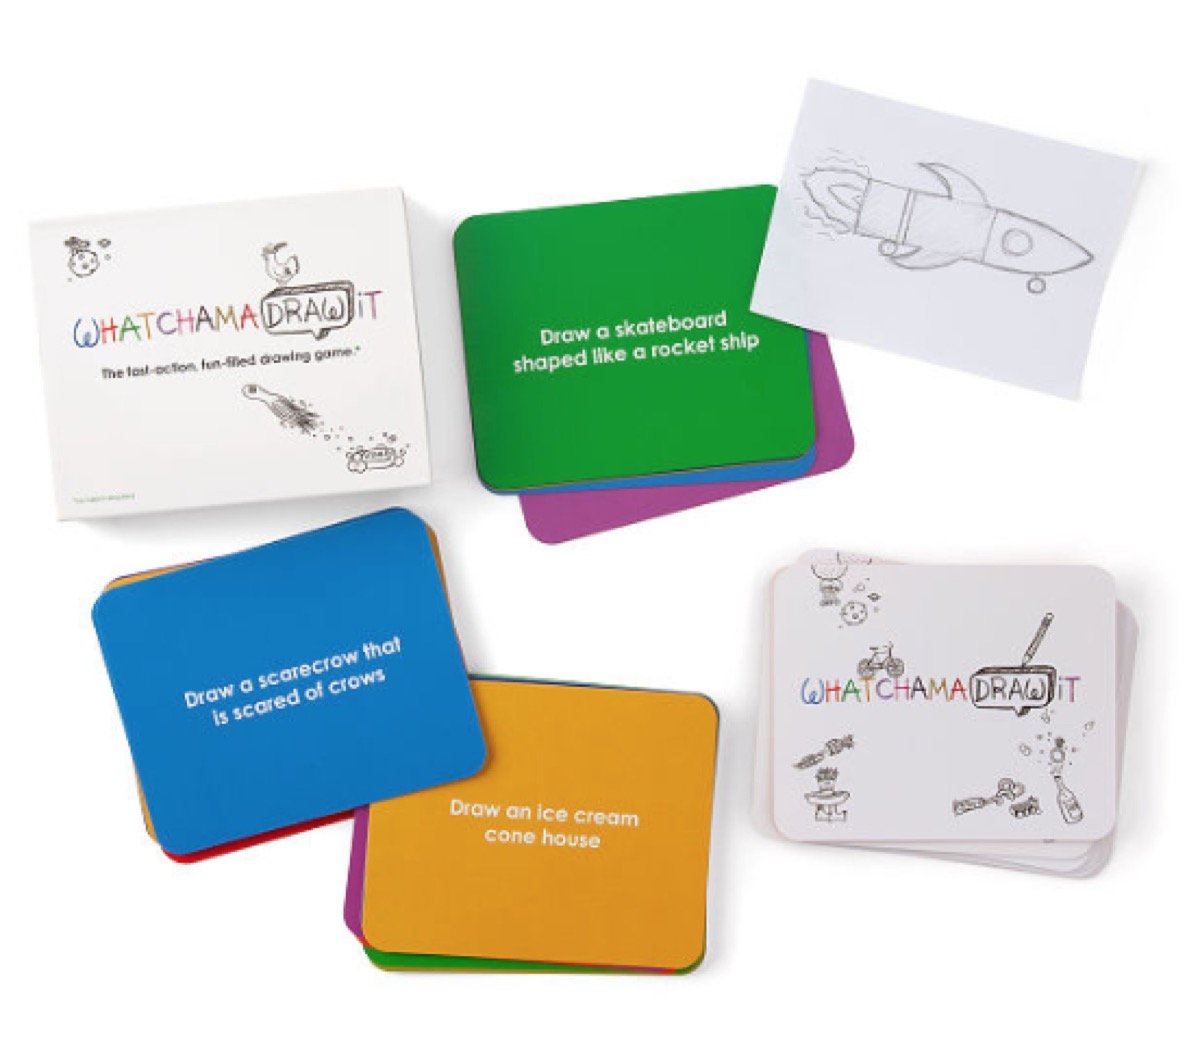 stacks of colorful cards and white cards with drawings on them